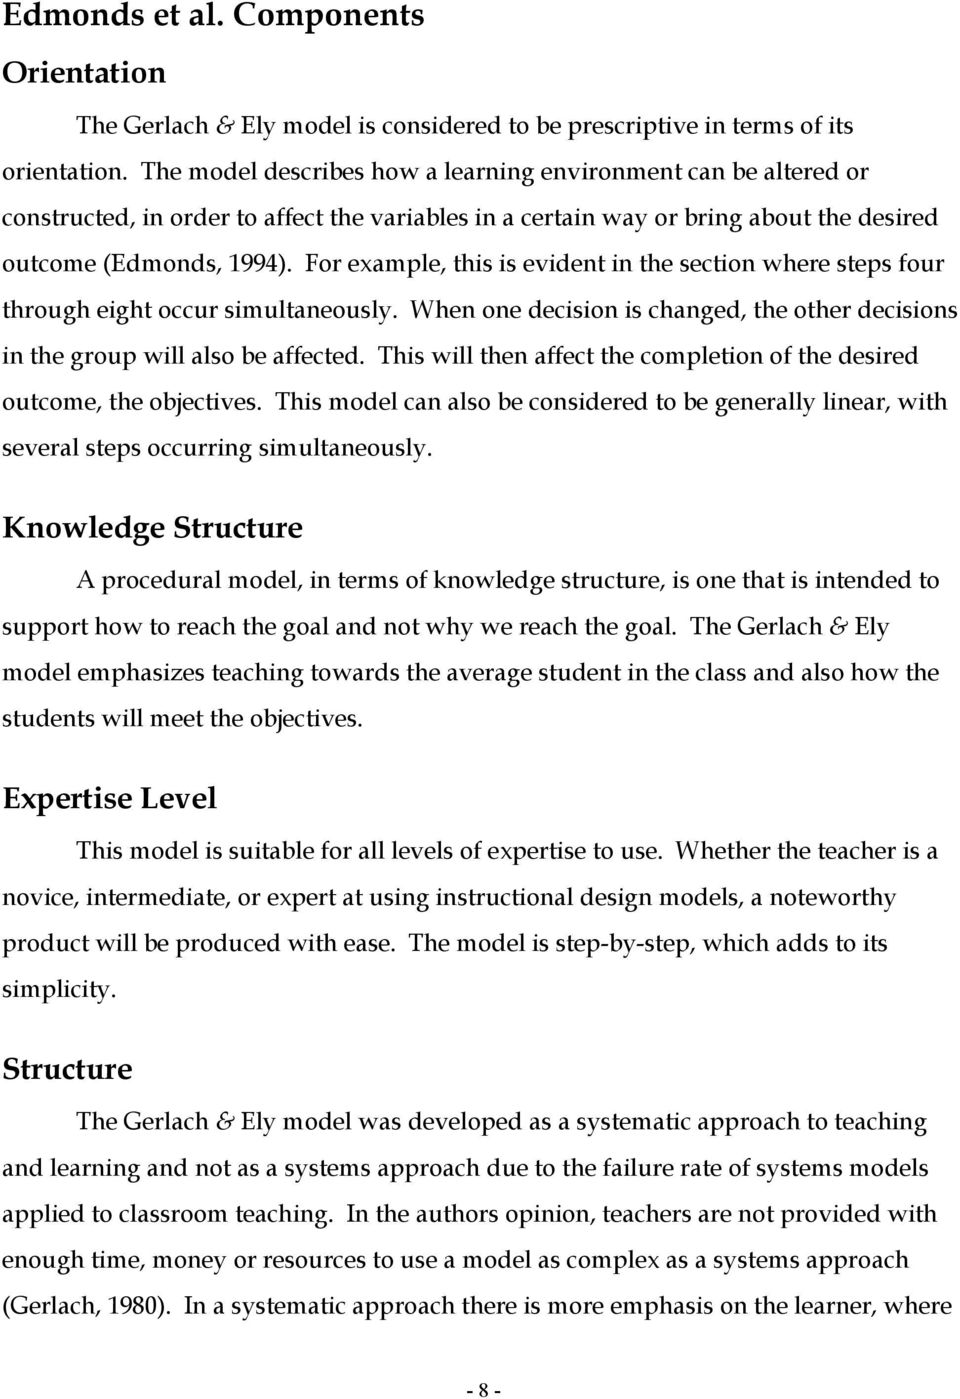 Teaching Media A Systematic Approach Pdf